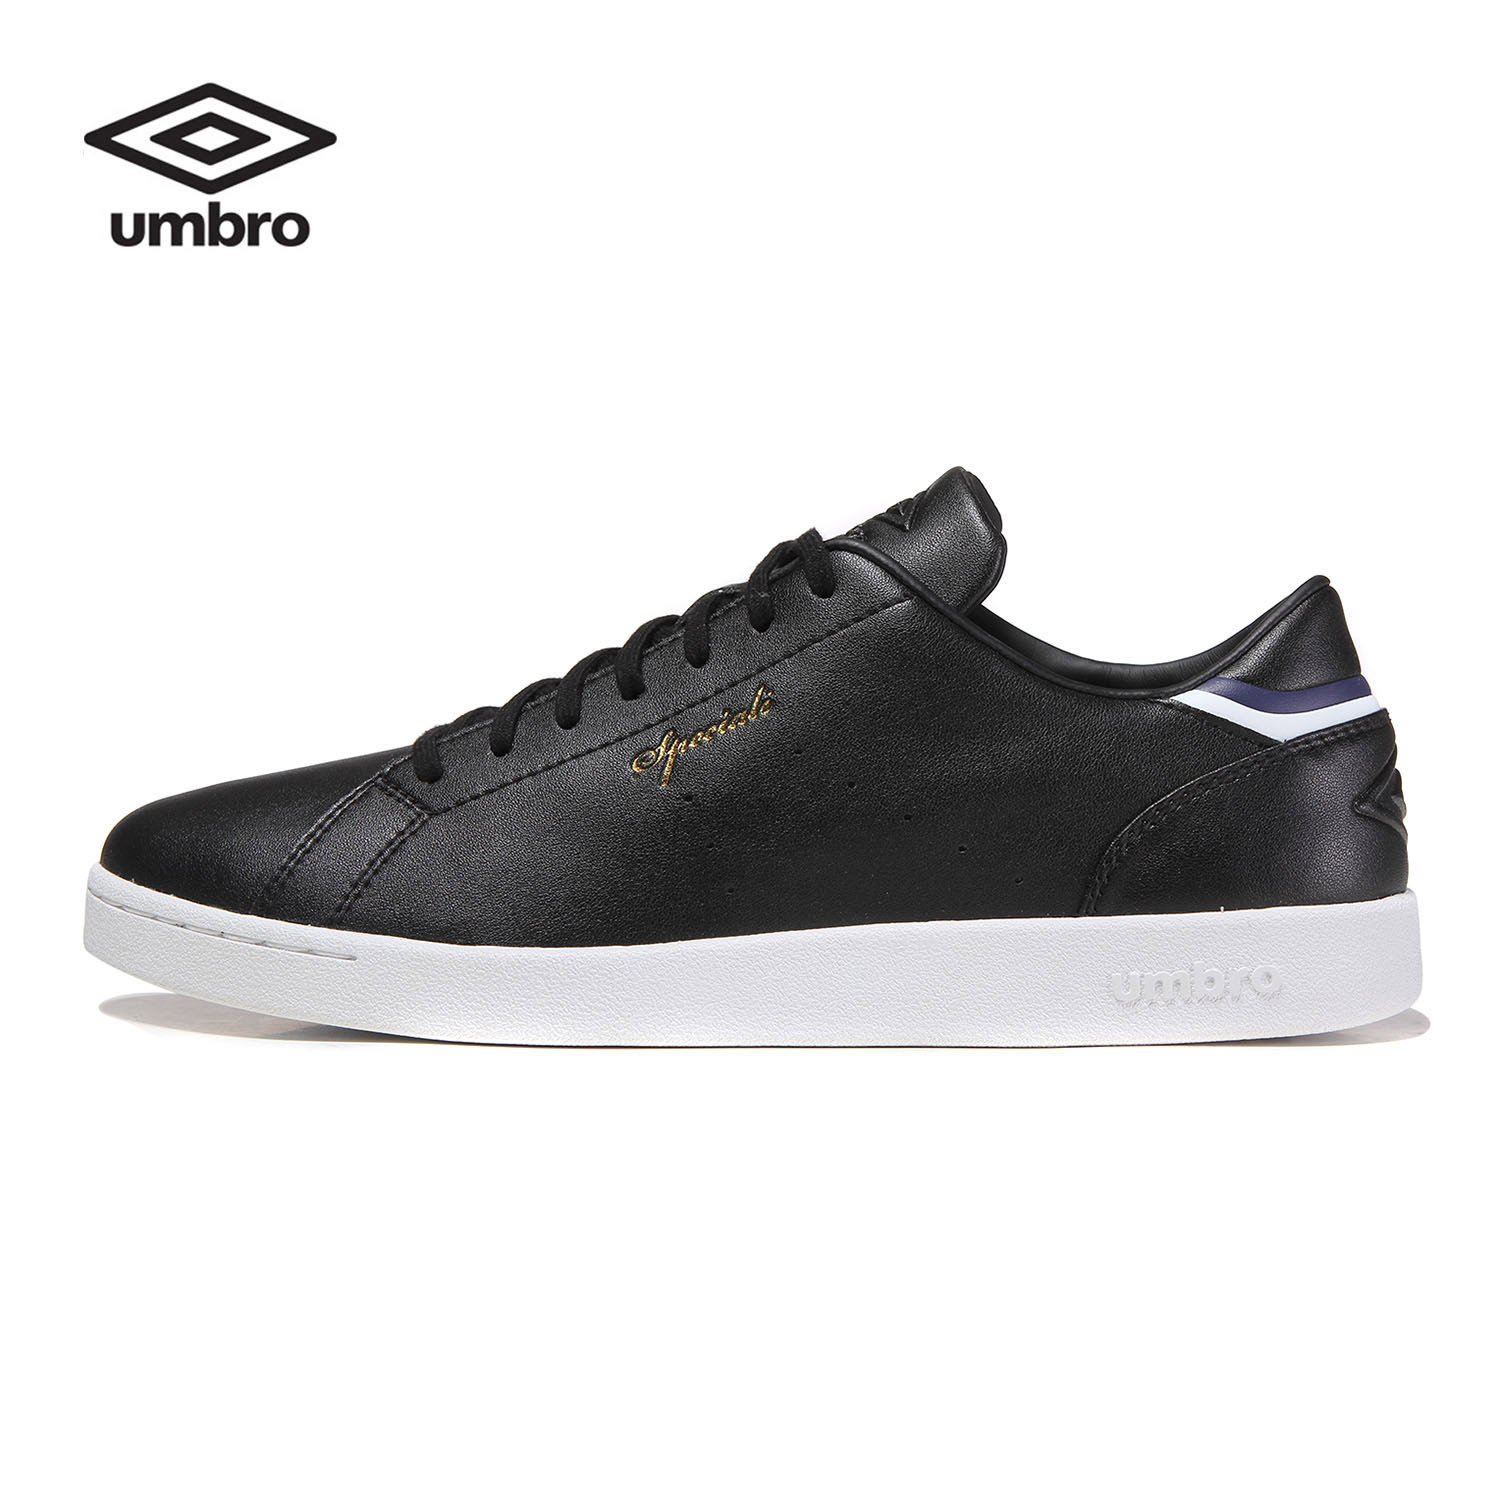 Umbro New Men Board Shoes Lace-Up Round Toe Flats Shoes White Korean Shoes Ucb90601